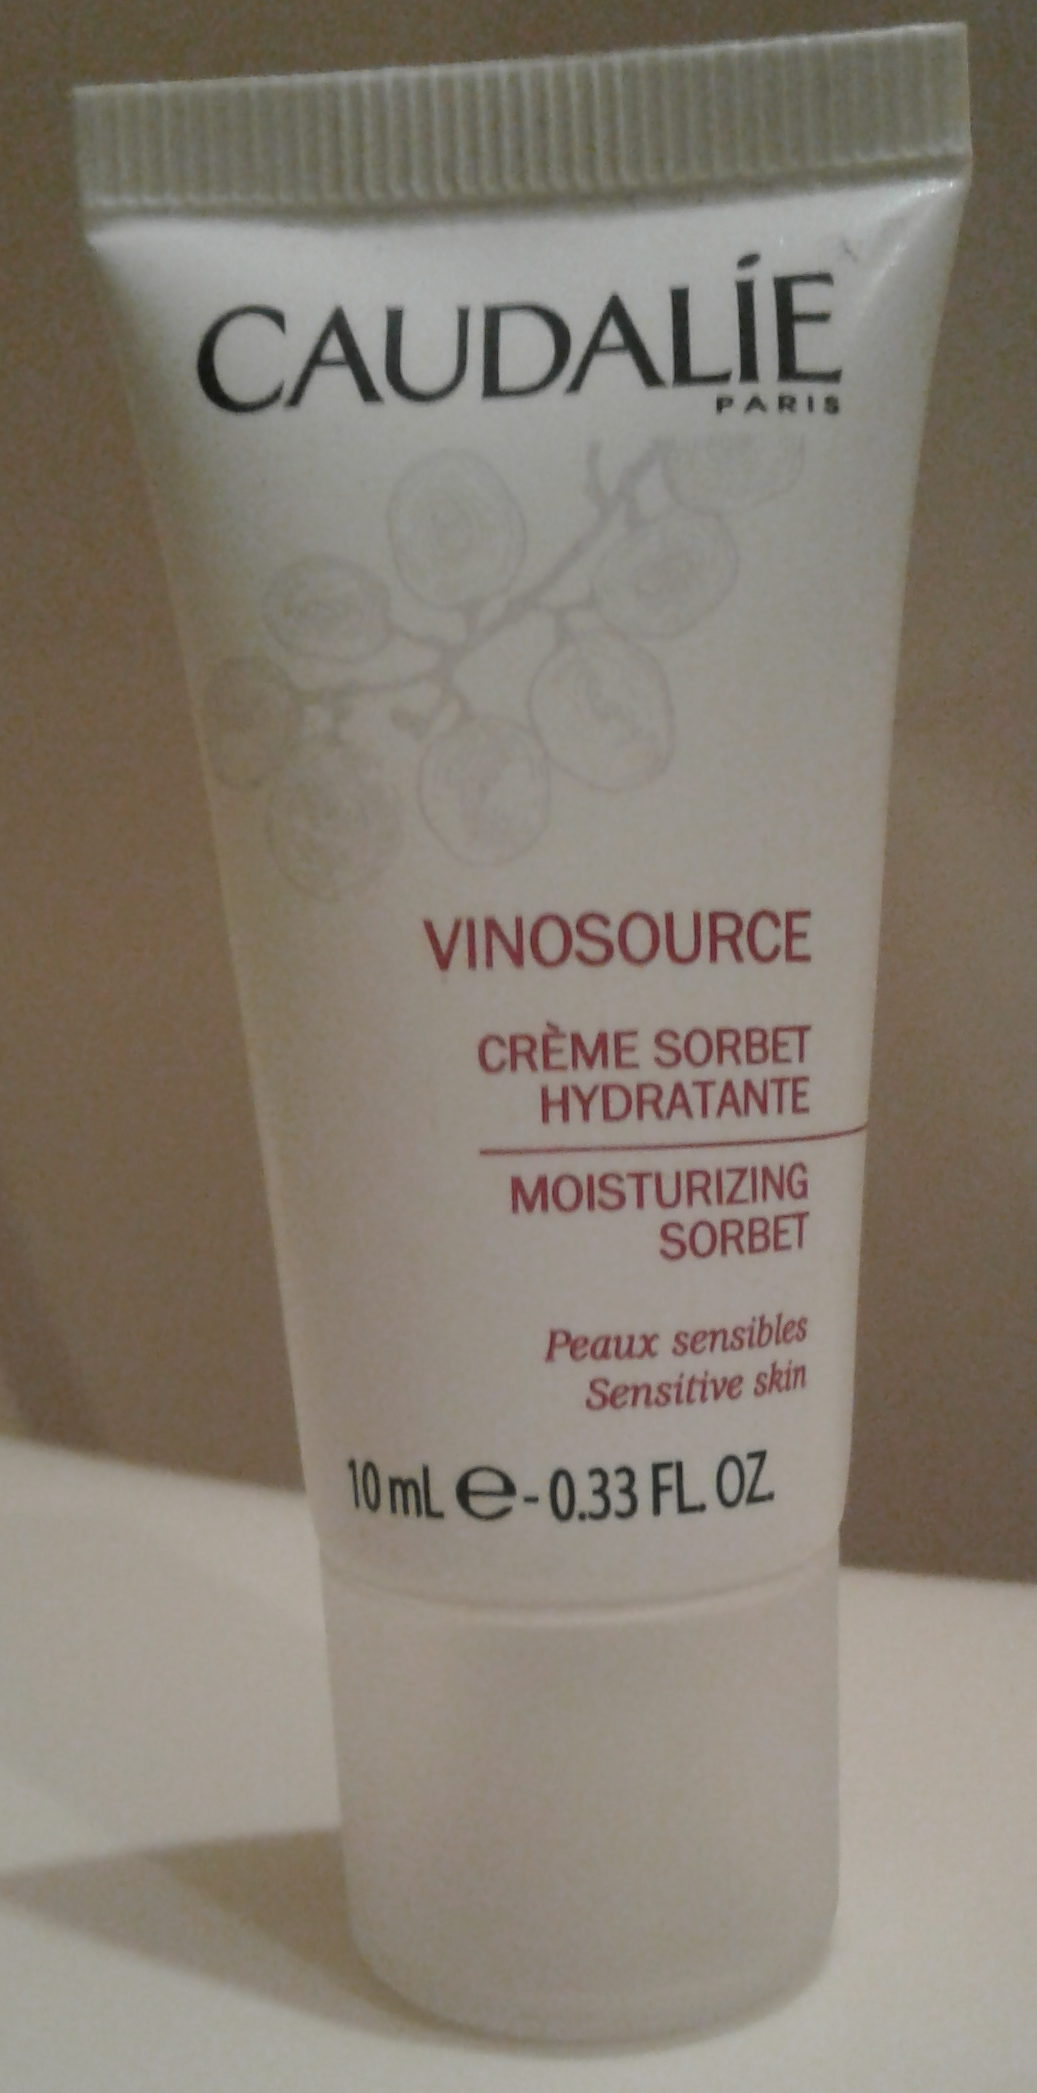 Vinosource - Product